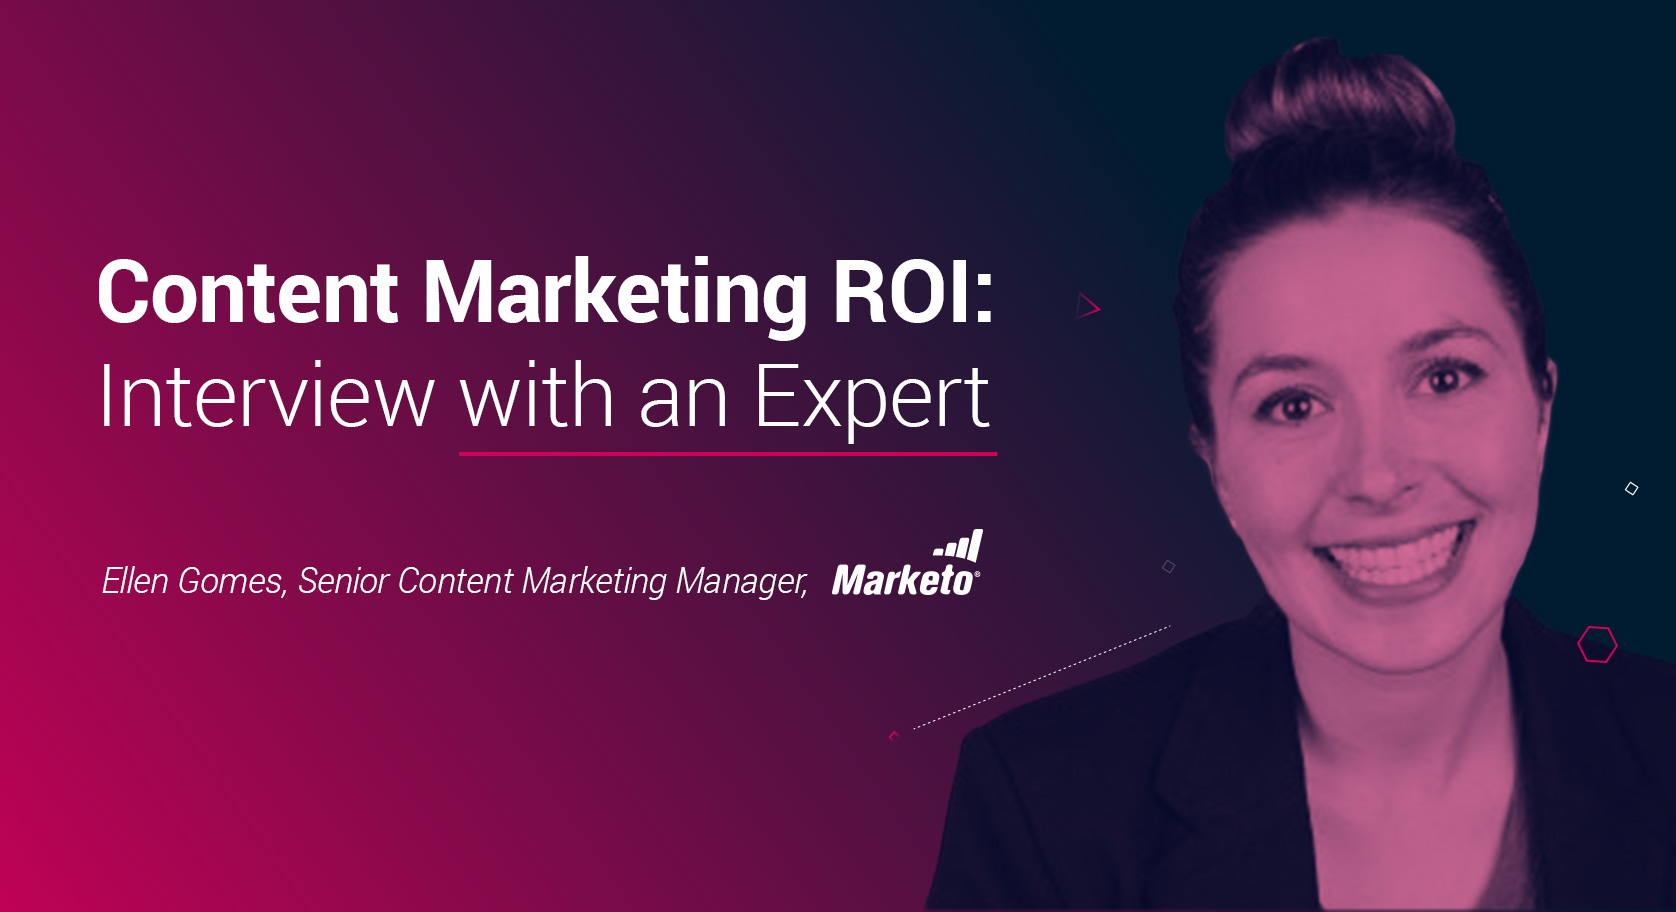 Content Marketing ROI Interview | Uberflip